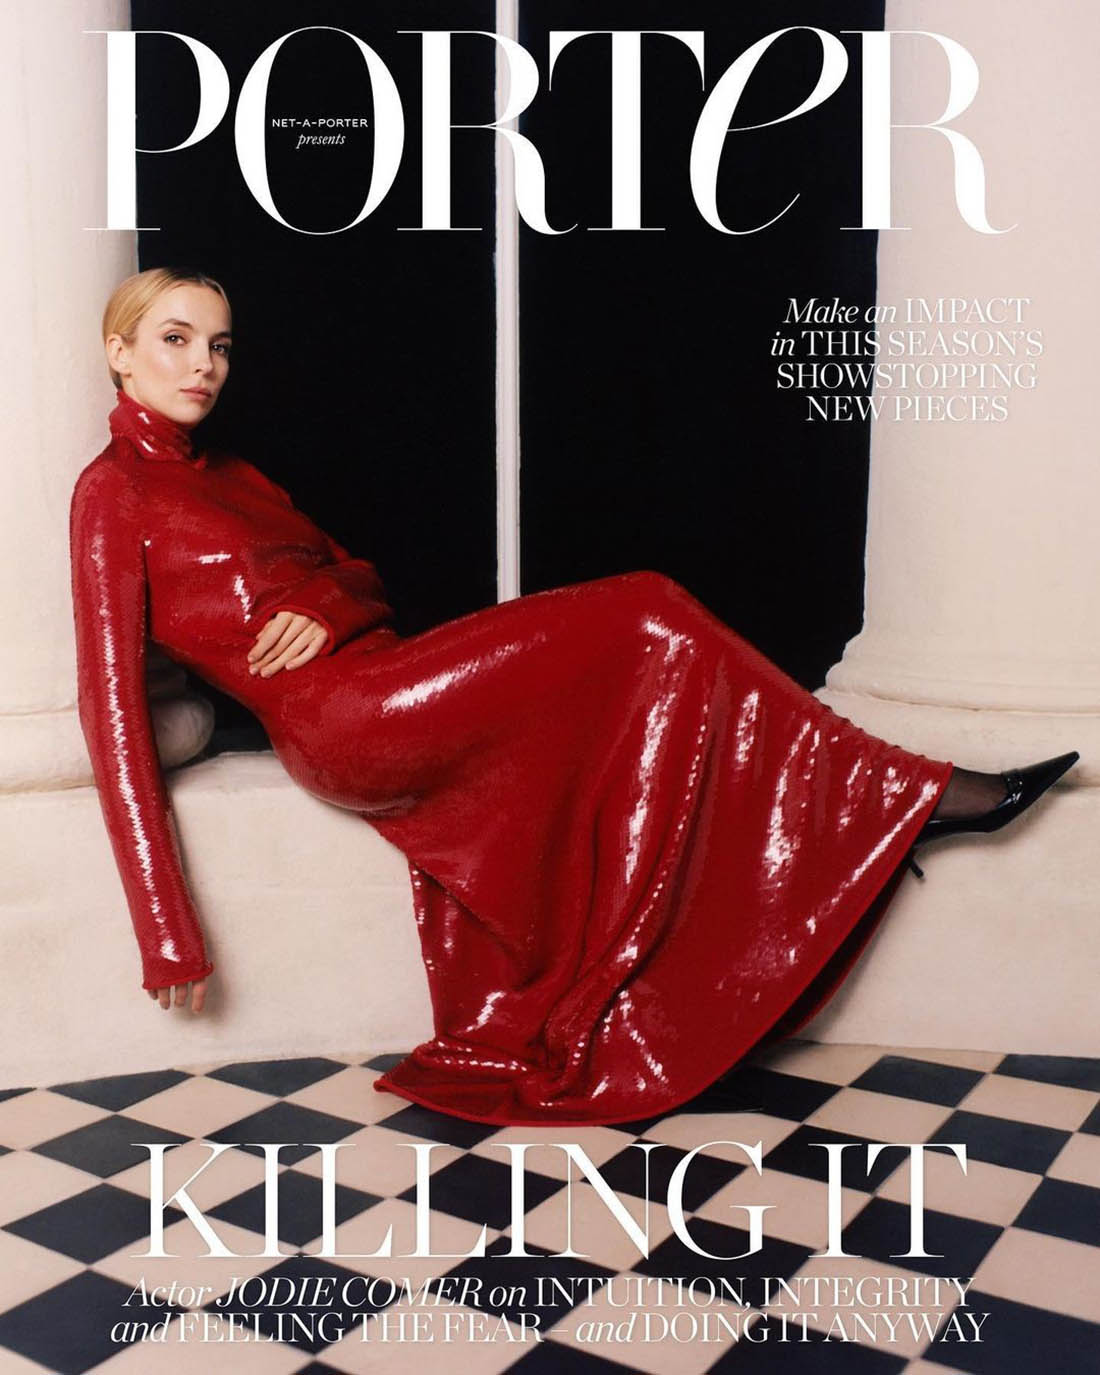 Jodie Comer covers Porter Magazine November 16th, 2020 by Juliette Cassidy